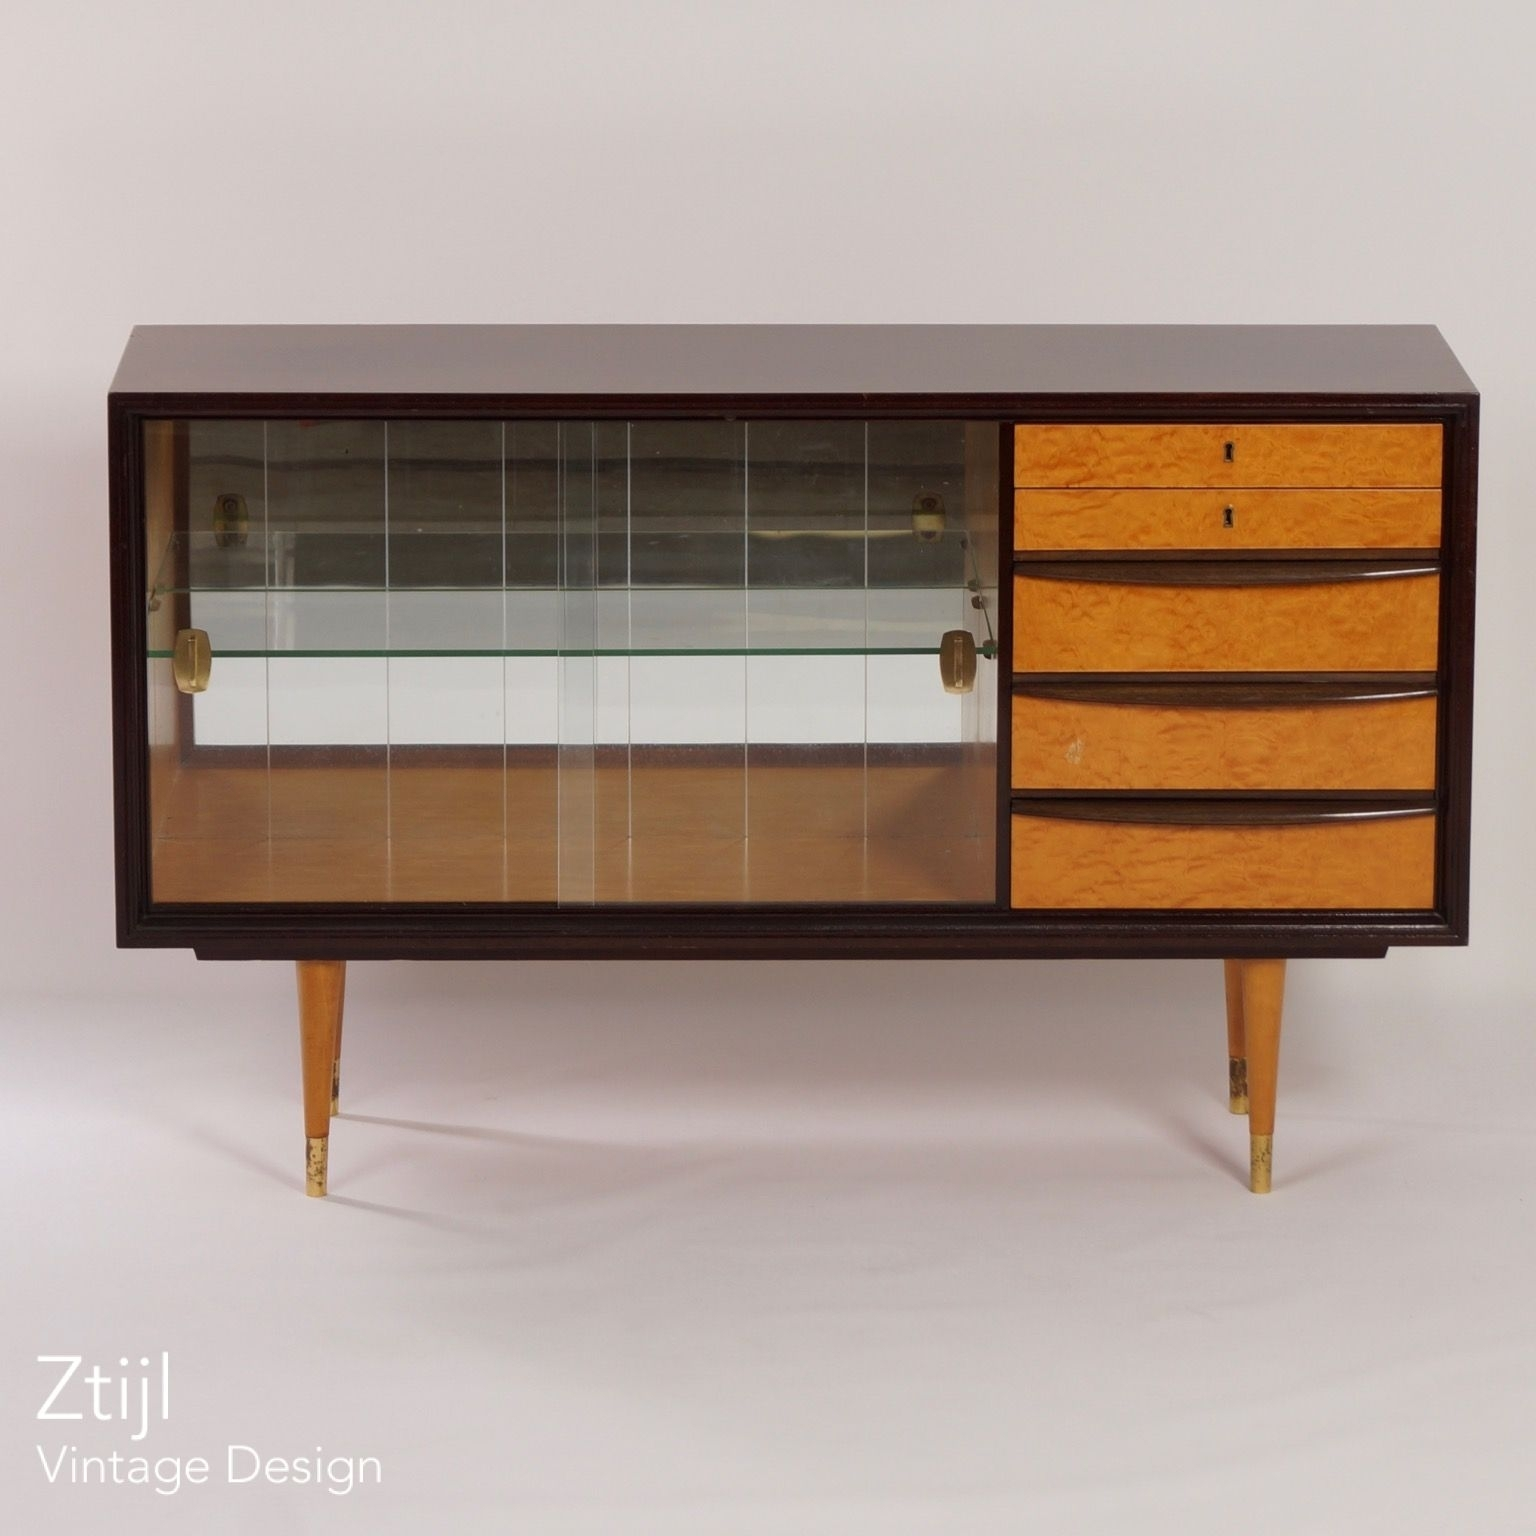 Mahogany Sideboard With Showcase And Brass Details, 1960S – Vintage Inside Recent Vintage 8 Glass Sideboards (View 15 of 20)